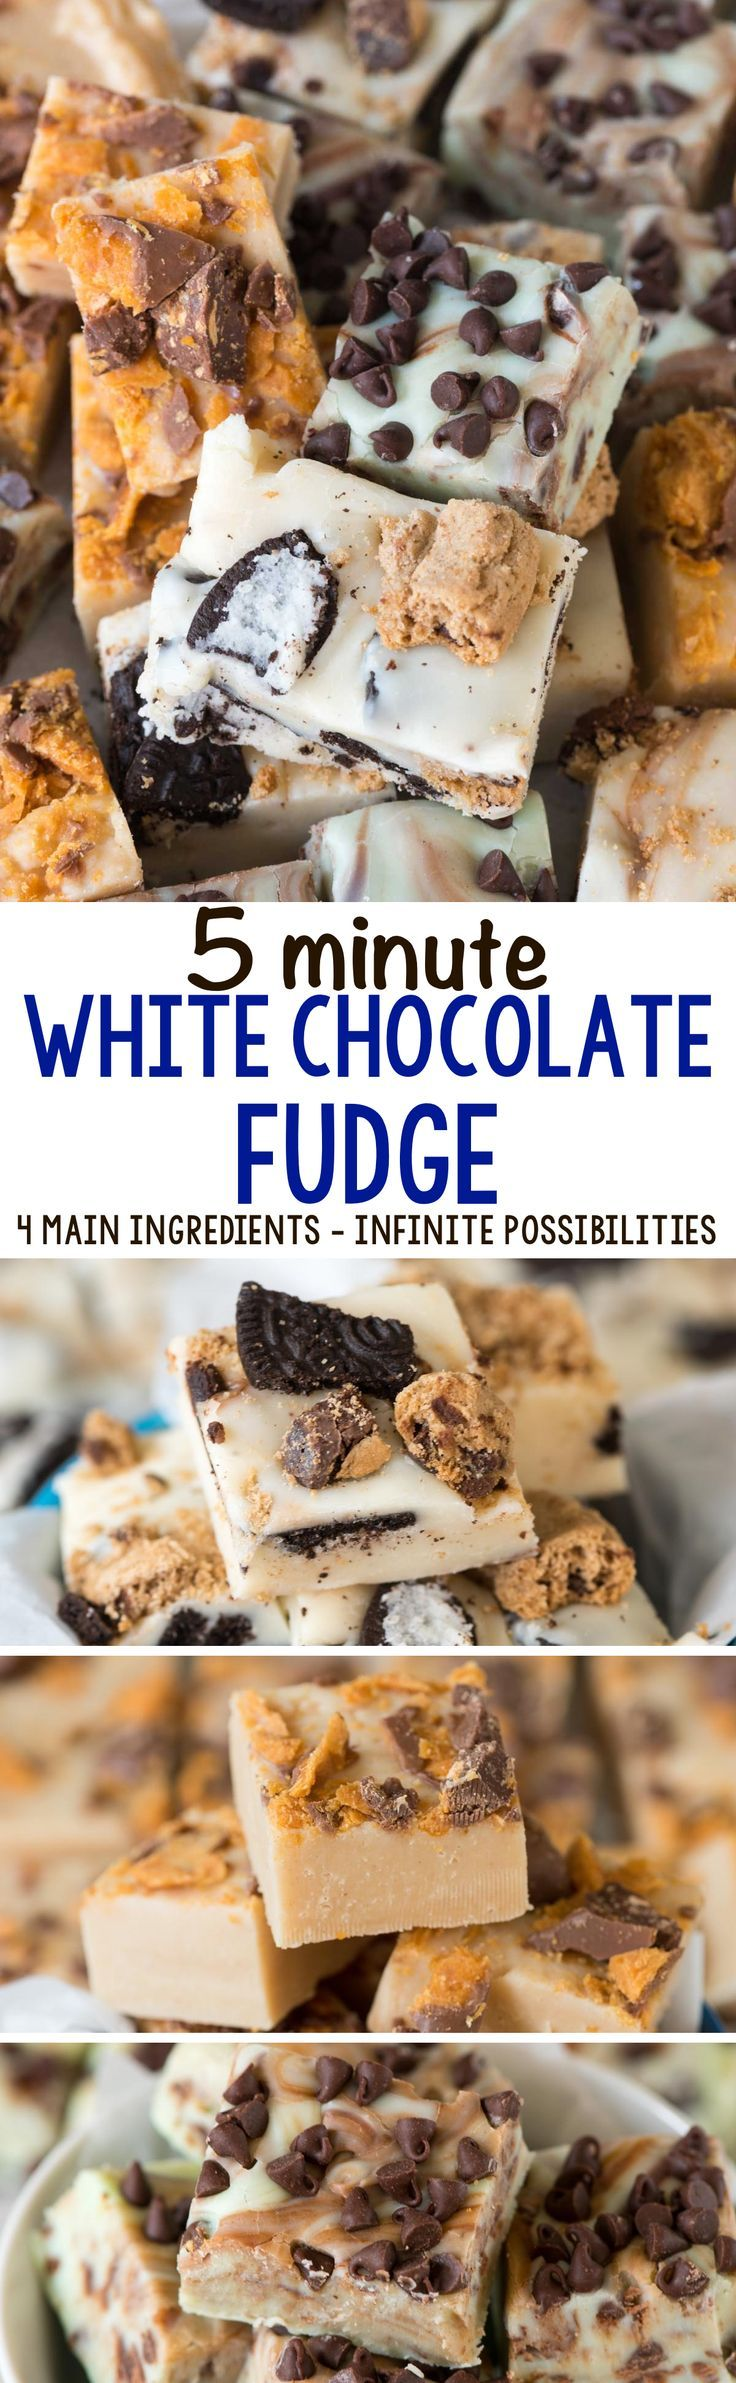 5 Minute White Chocolate Fudge - this easy 4 ingredient fudge recipe can be made so many different ways! Make Cookies & Milk fudge, peanut butter fudge, or mint chip fudge with just a few extra steps. Perfect for the holidays!